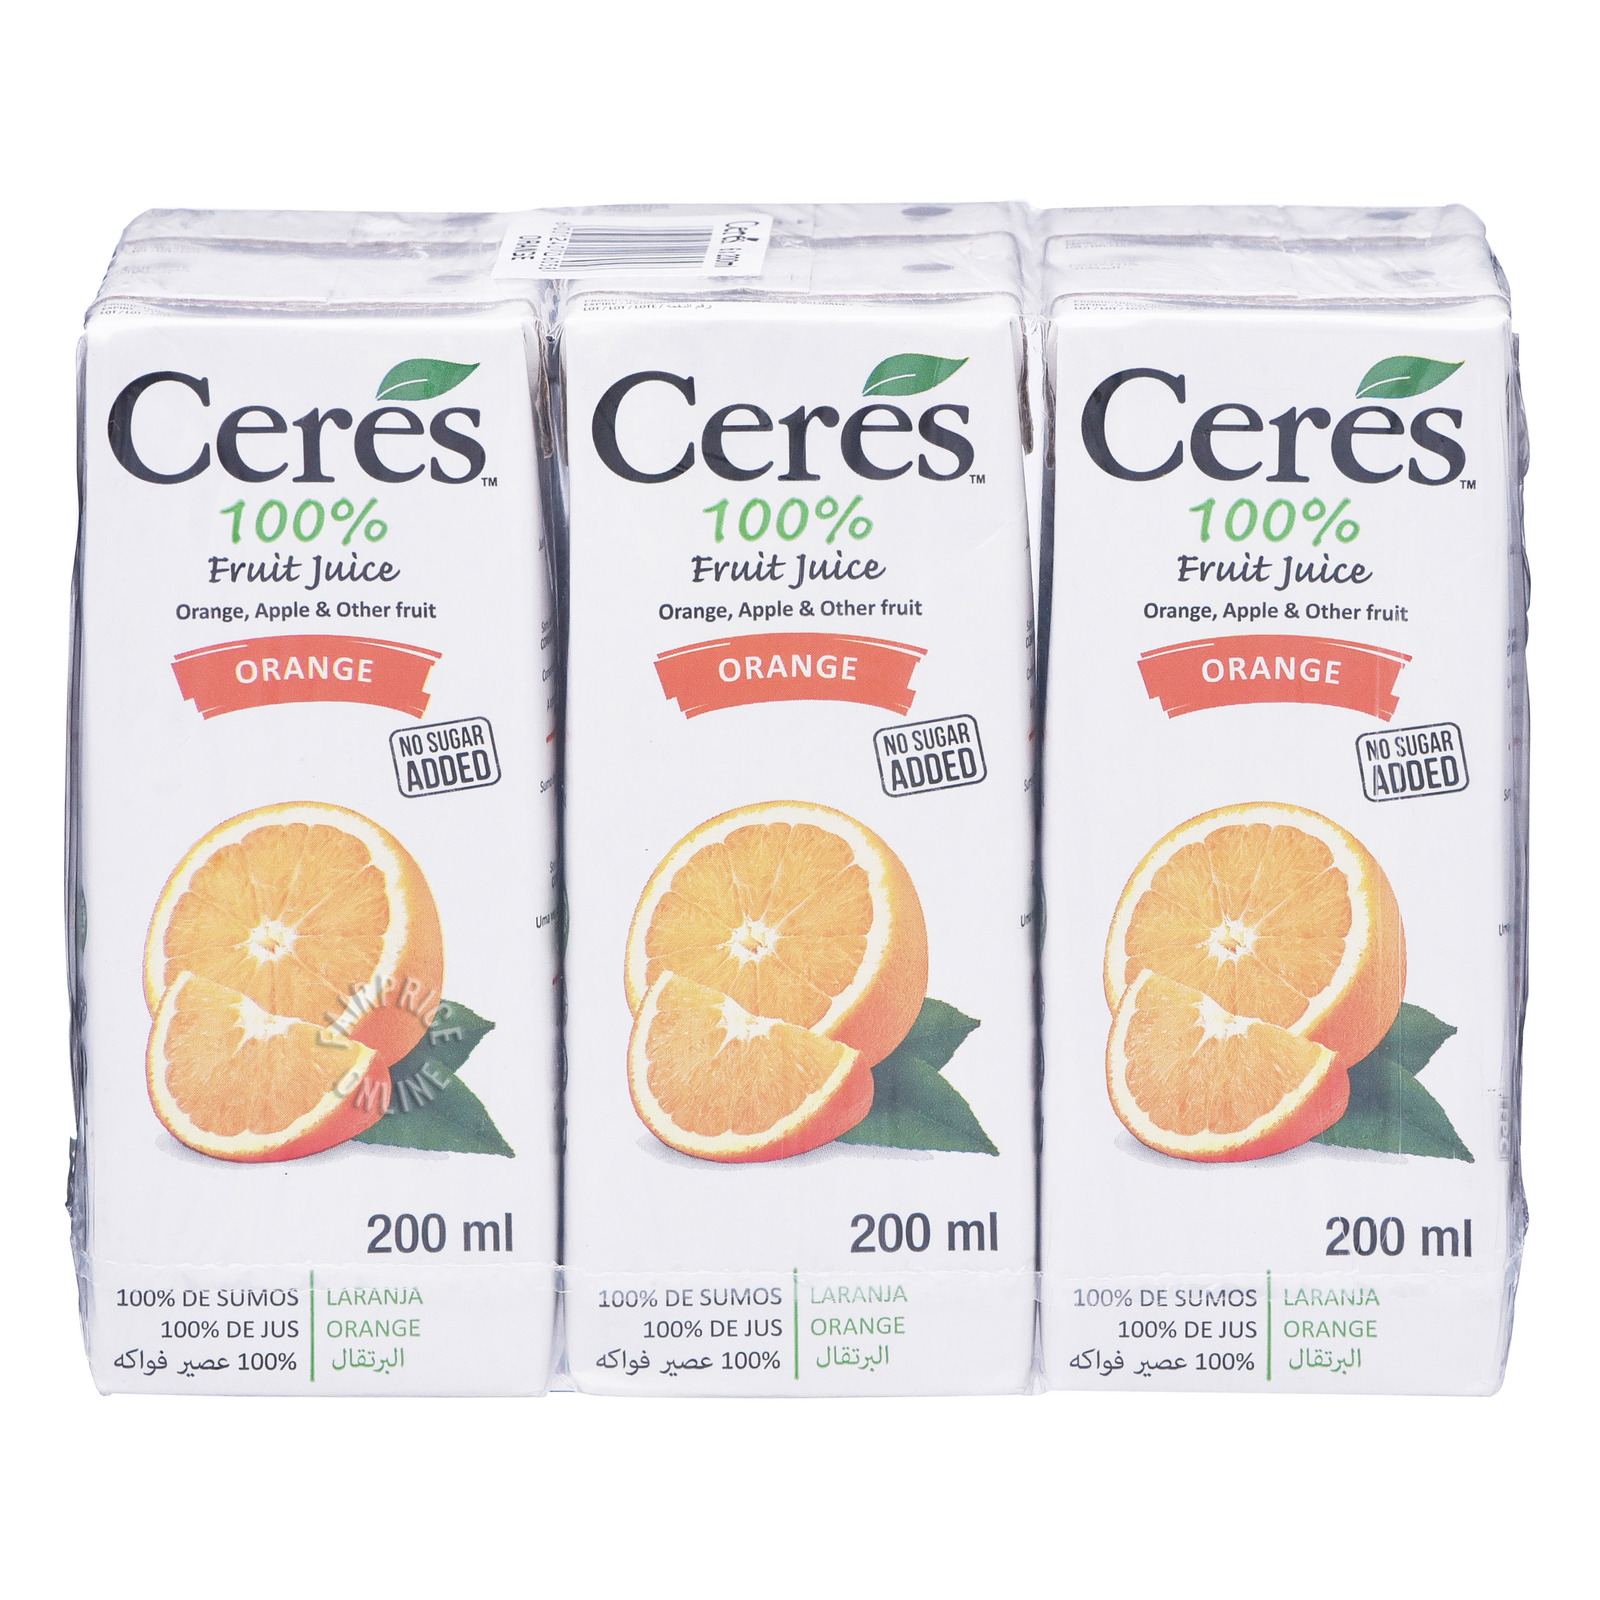 Ceres 100% Juice Packet Drink - Orange